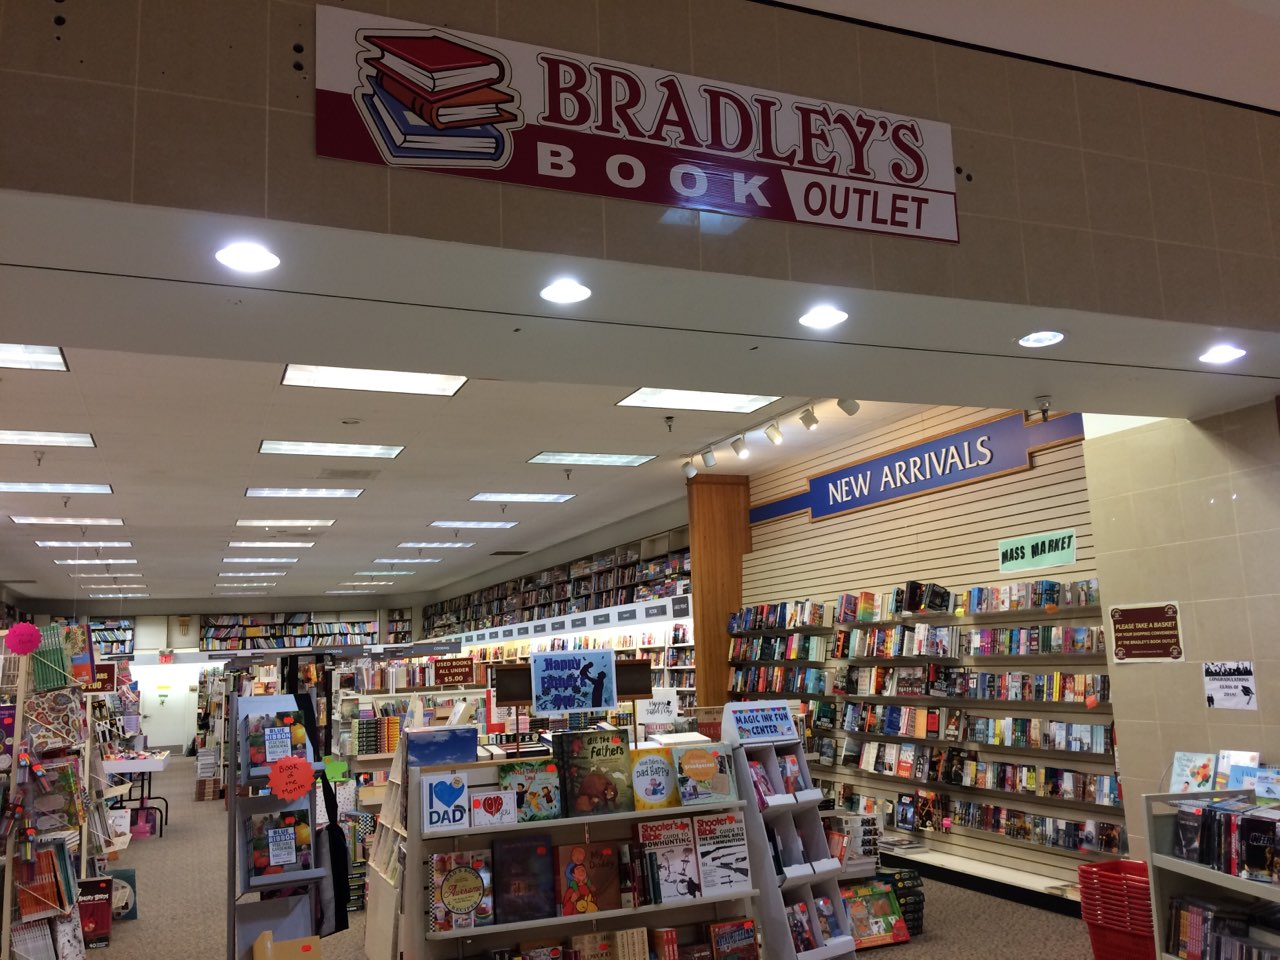 Bradley's Book Outlet storefront at Cranberry Mall